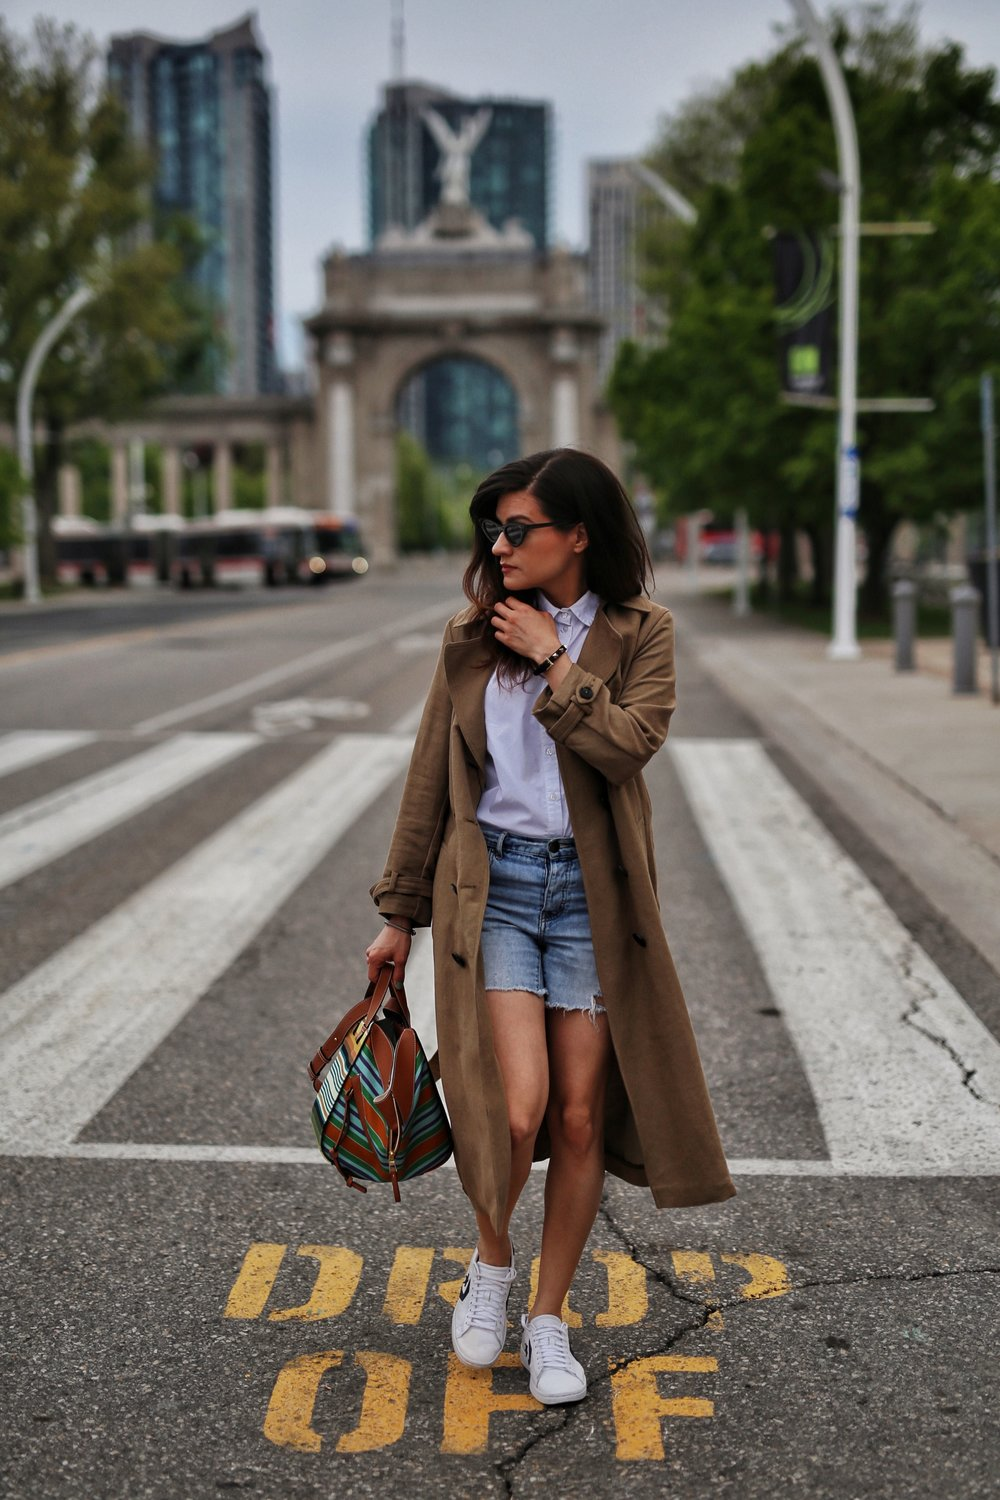 woahstyle.com 2018 - zara linen trench coat, free people cut off shorts, converse one stars, loewe striped small hammock bag, white button up shirt - toronto street style - hotel x - nathalie martin 12.jpg